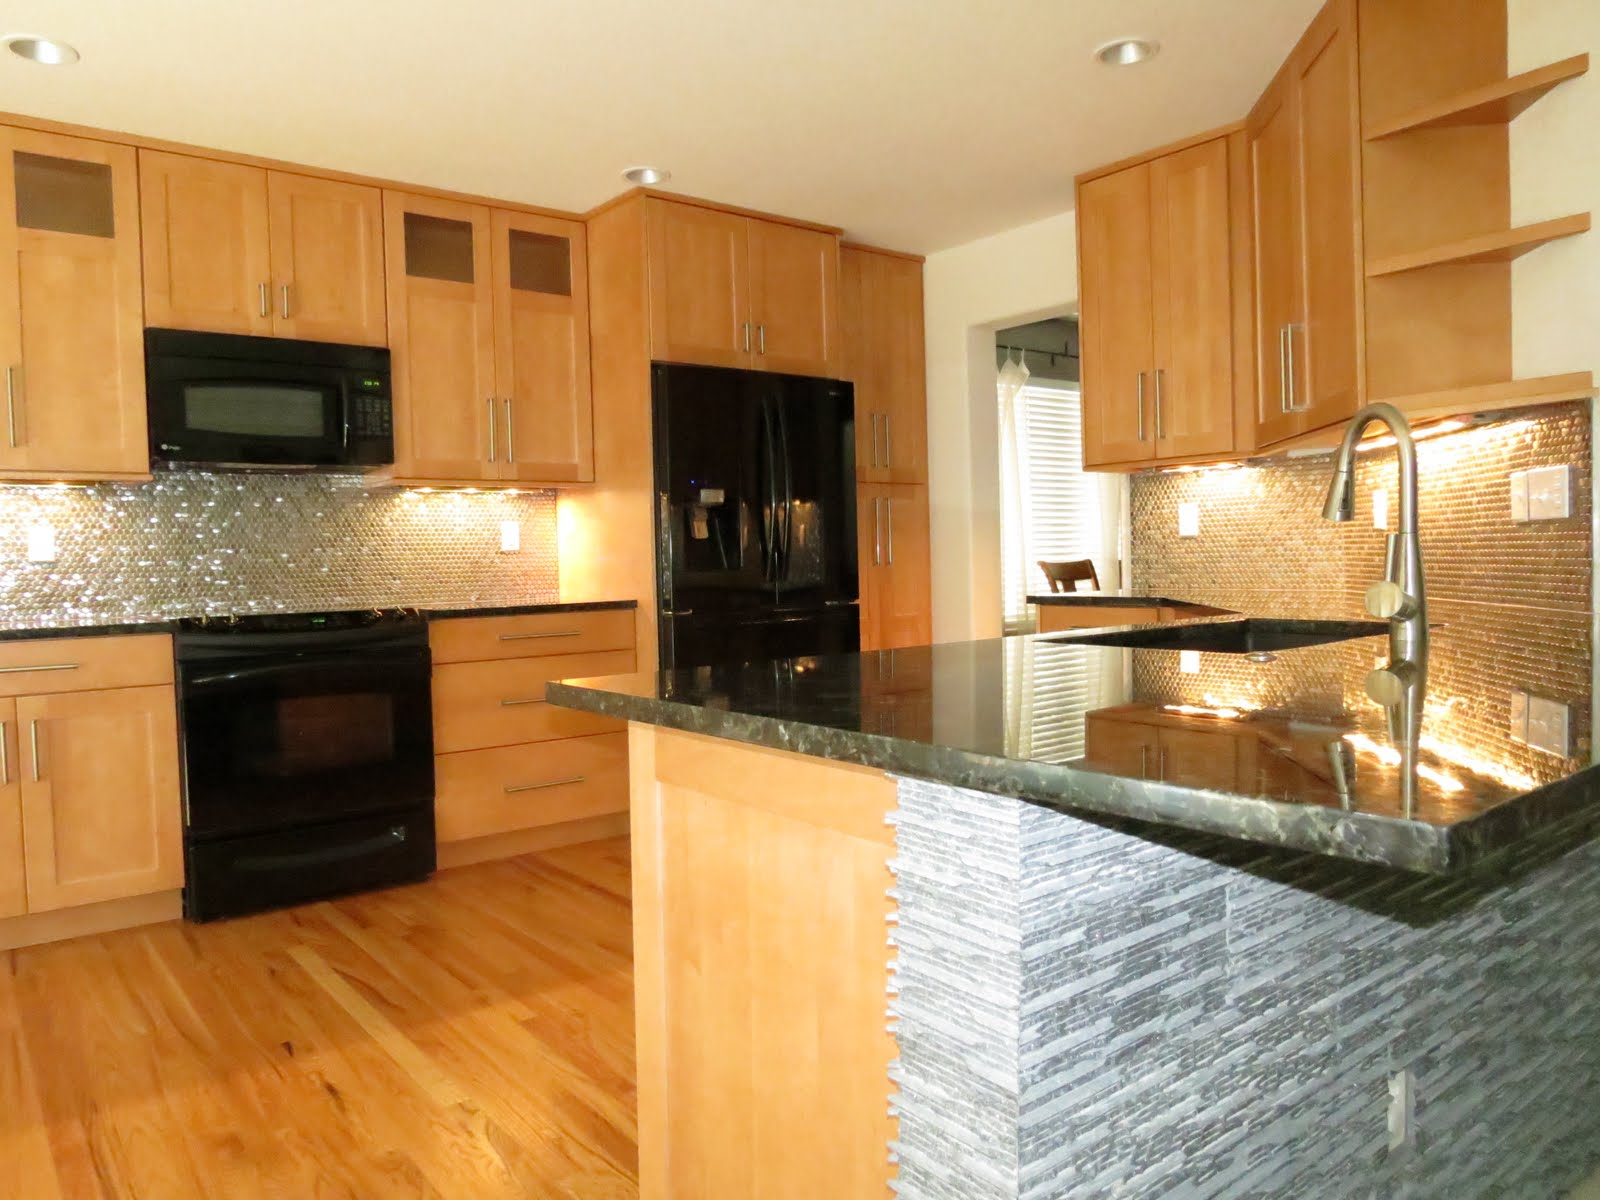 KC Cabinetry Design and Renovation: Sleek Kitchen Design ... on Kitchen Backsplash With Maple Cabinets  id=51004